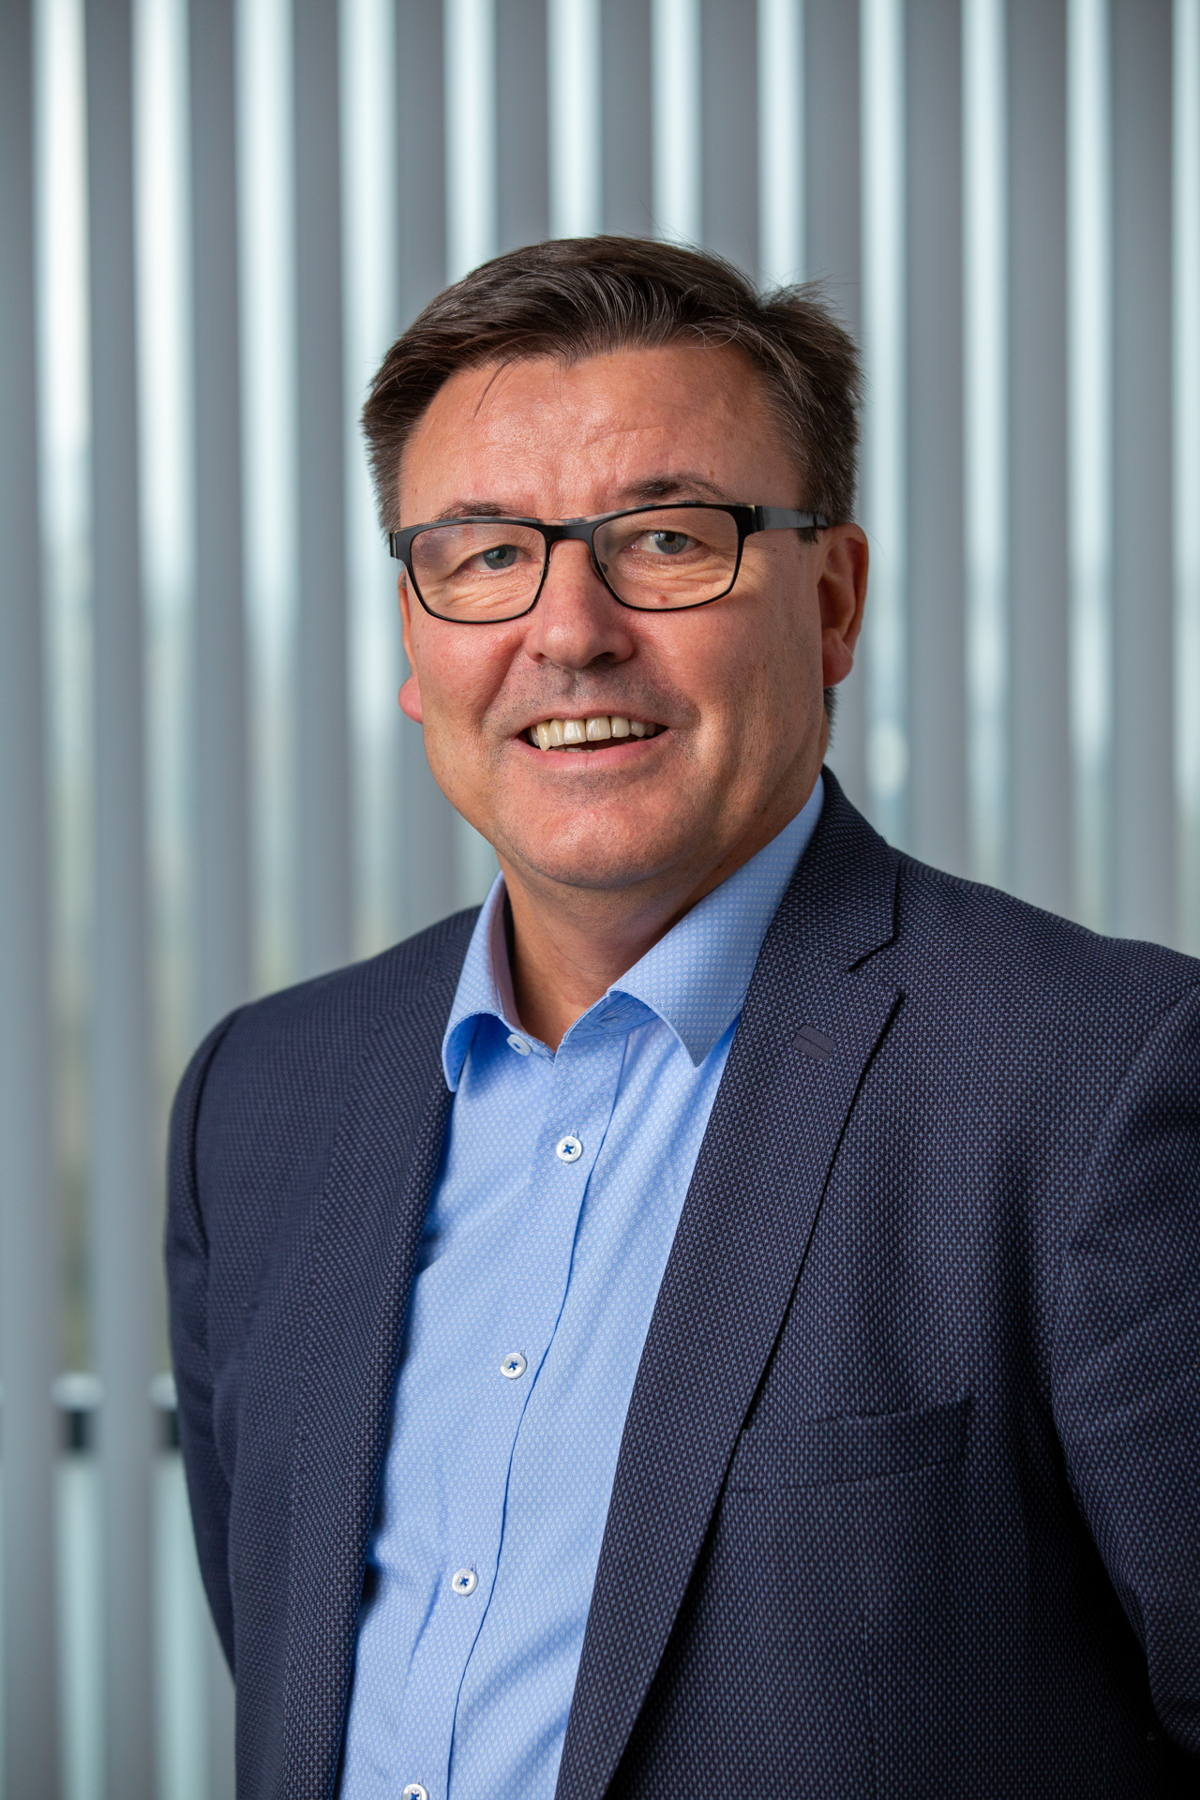 Ronny De Goedt - Managing Director at Wolters Kluwer Tax & Accounting